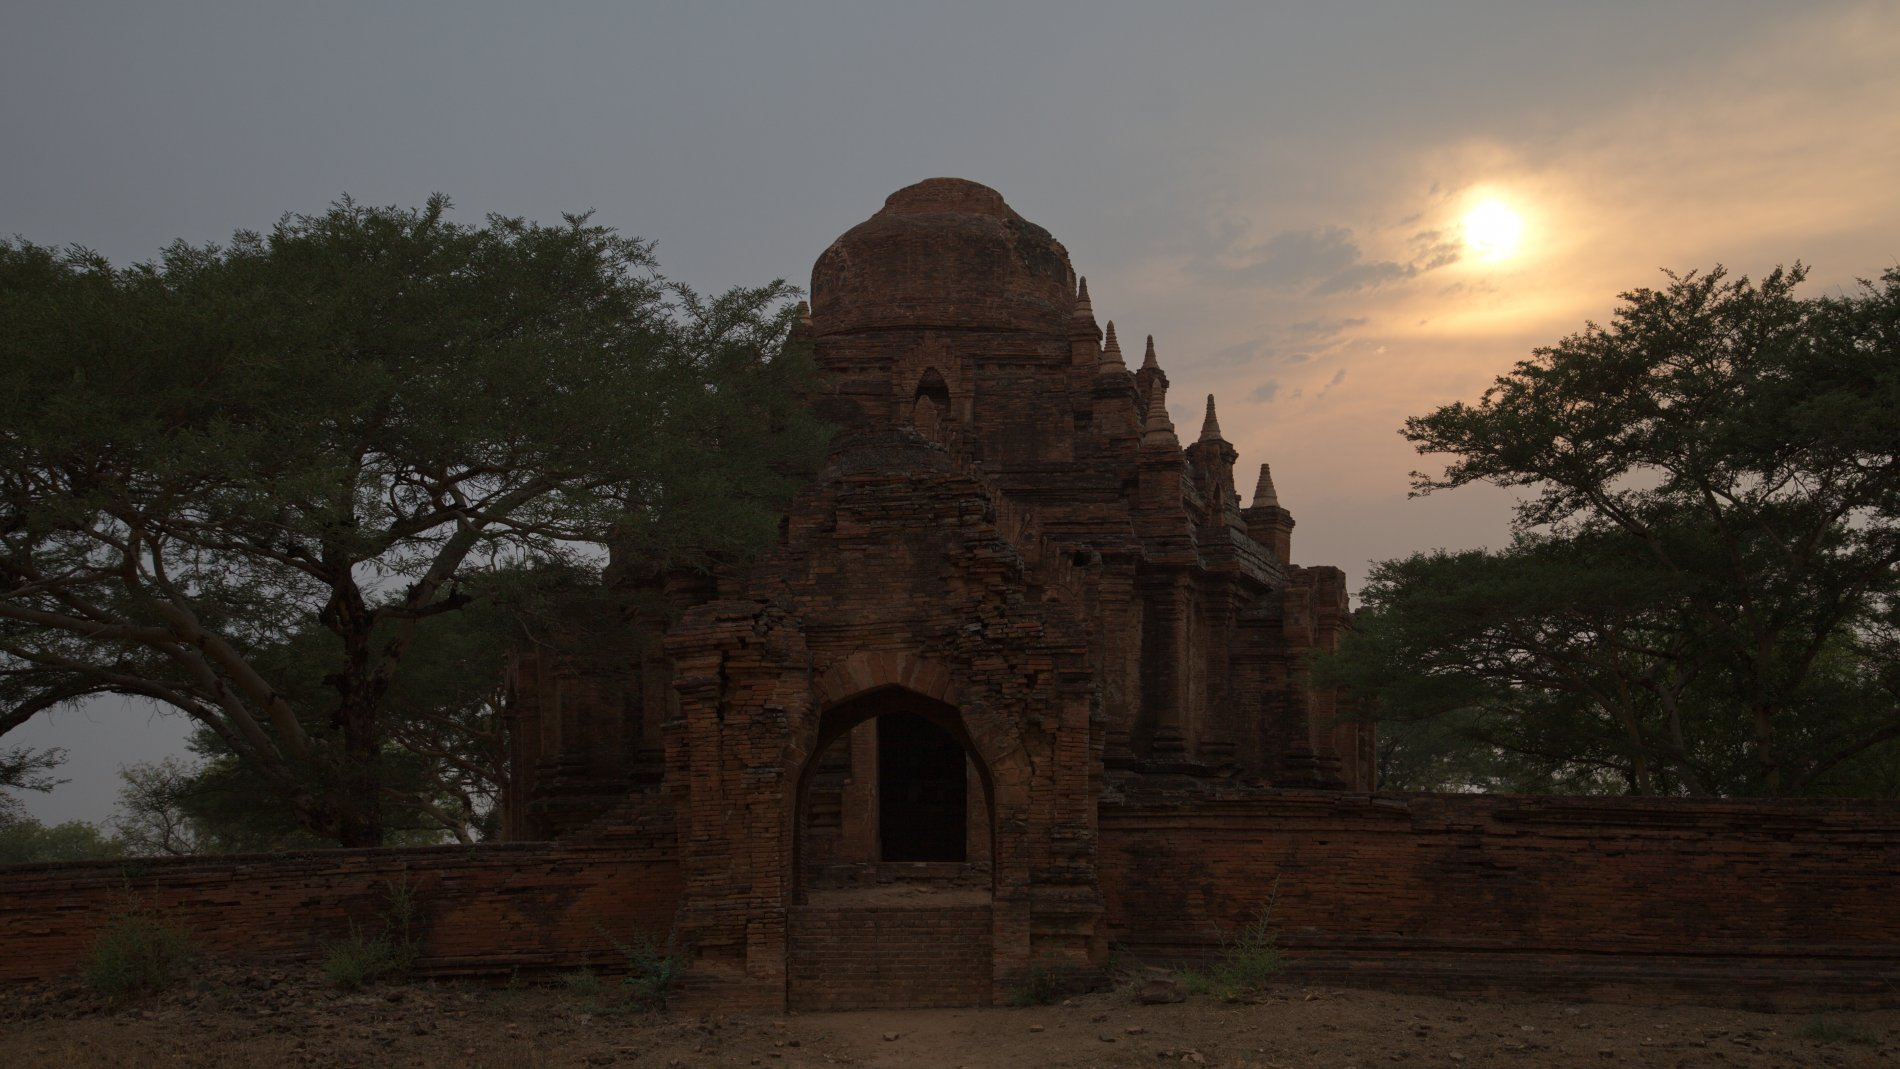 Bagan_159.jpg-commment